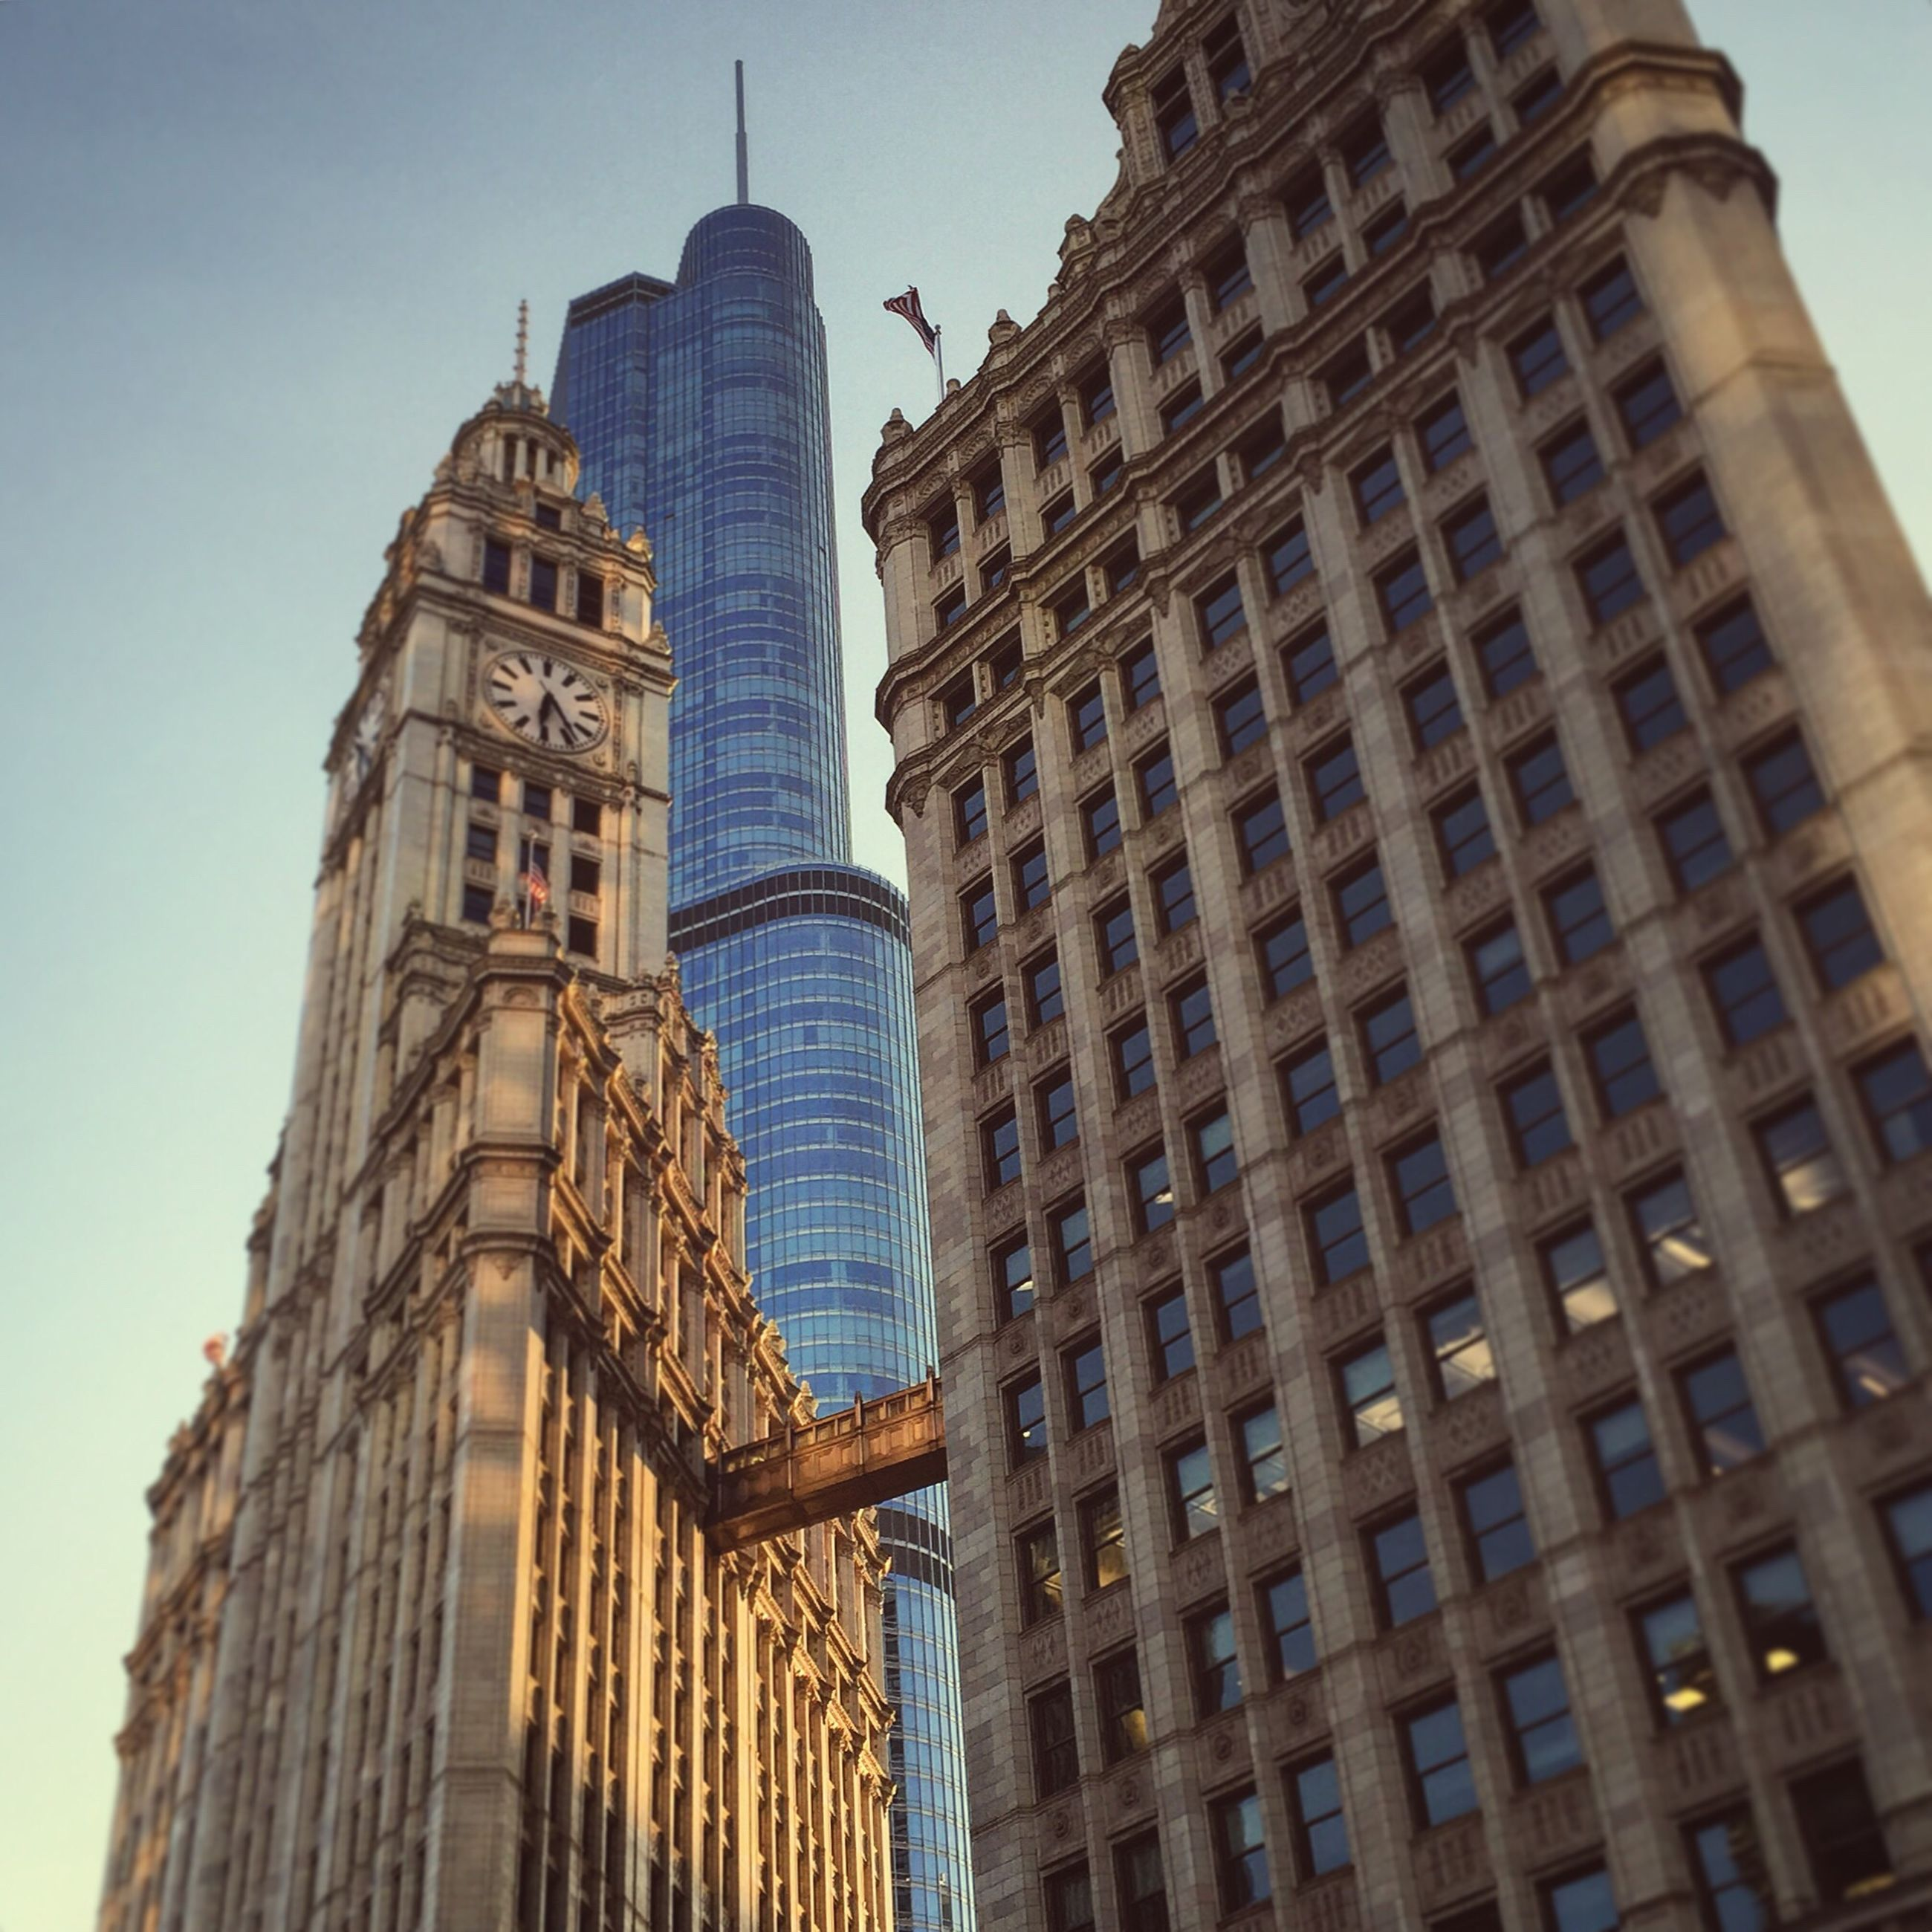 building exterior, architecture, built structure, low angle view, tall - high, tower, city, skyscraper, modern, office building, famous place, capital cities, travel destinations, clear sky, international landmark, building, tourism, day, travel, tall